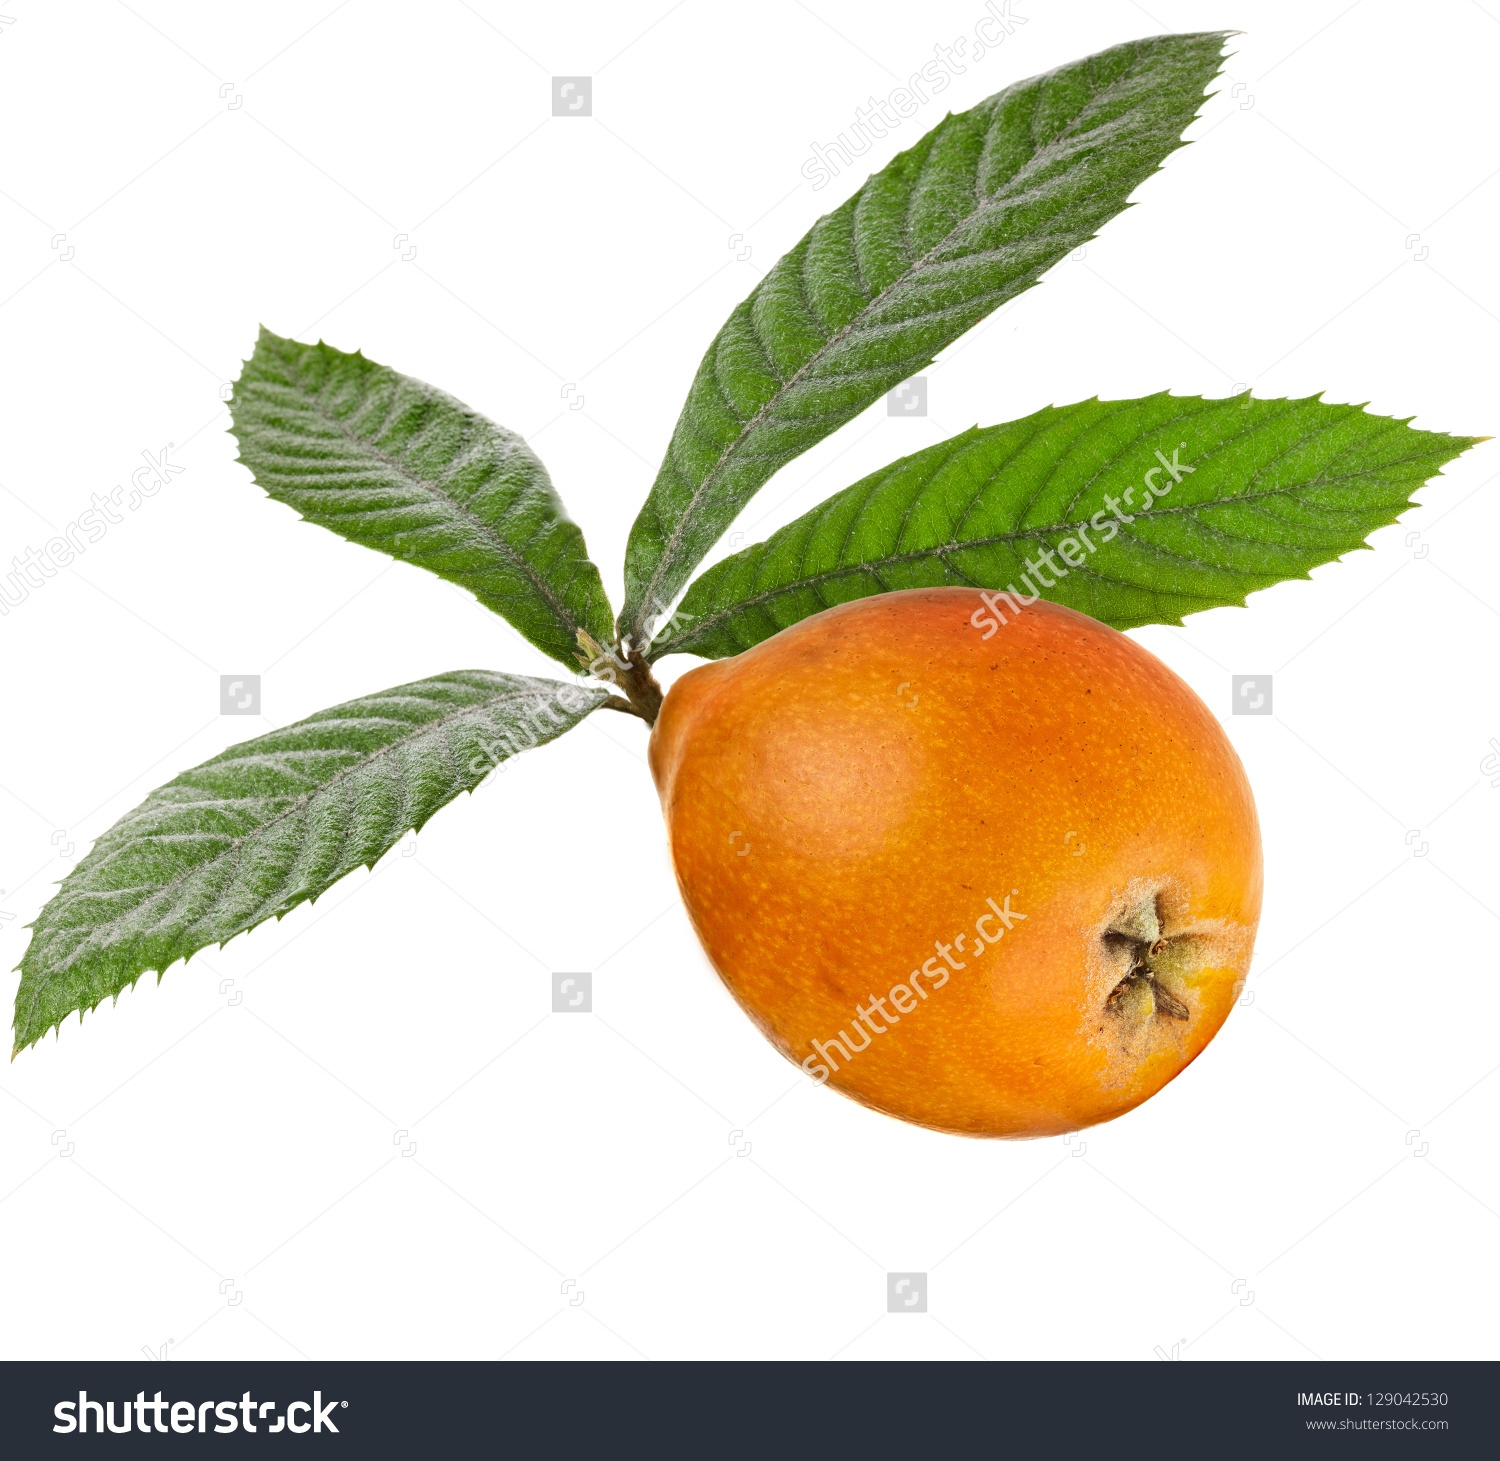 One Loquat Medlar Branch Isolated On A White Background Stock.